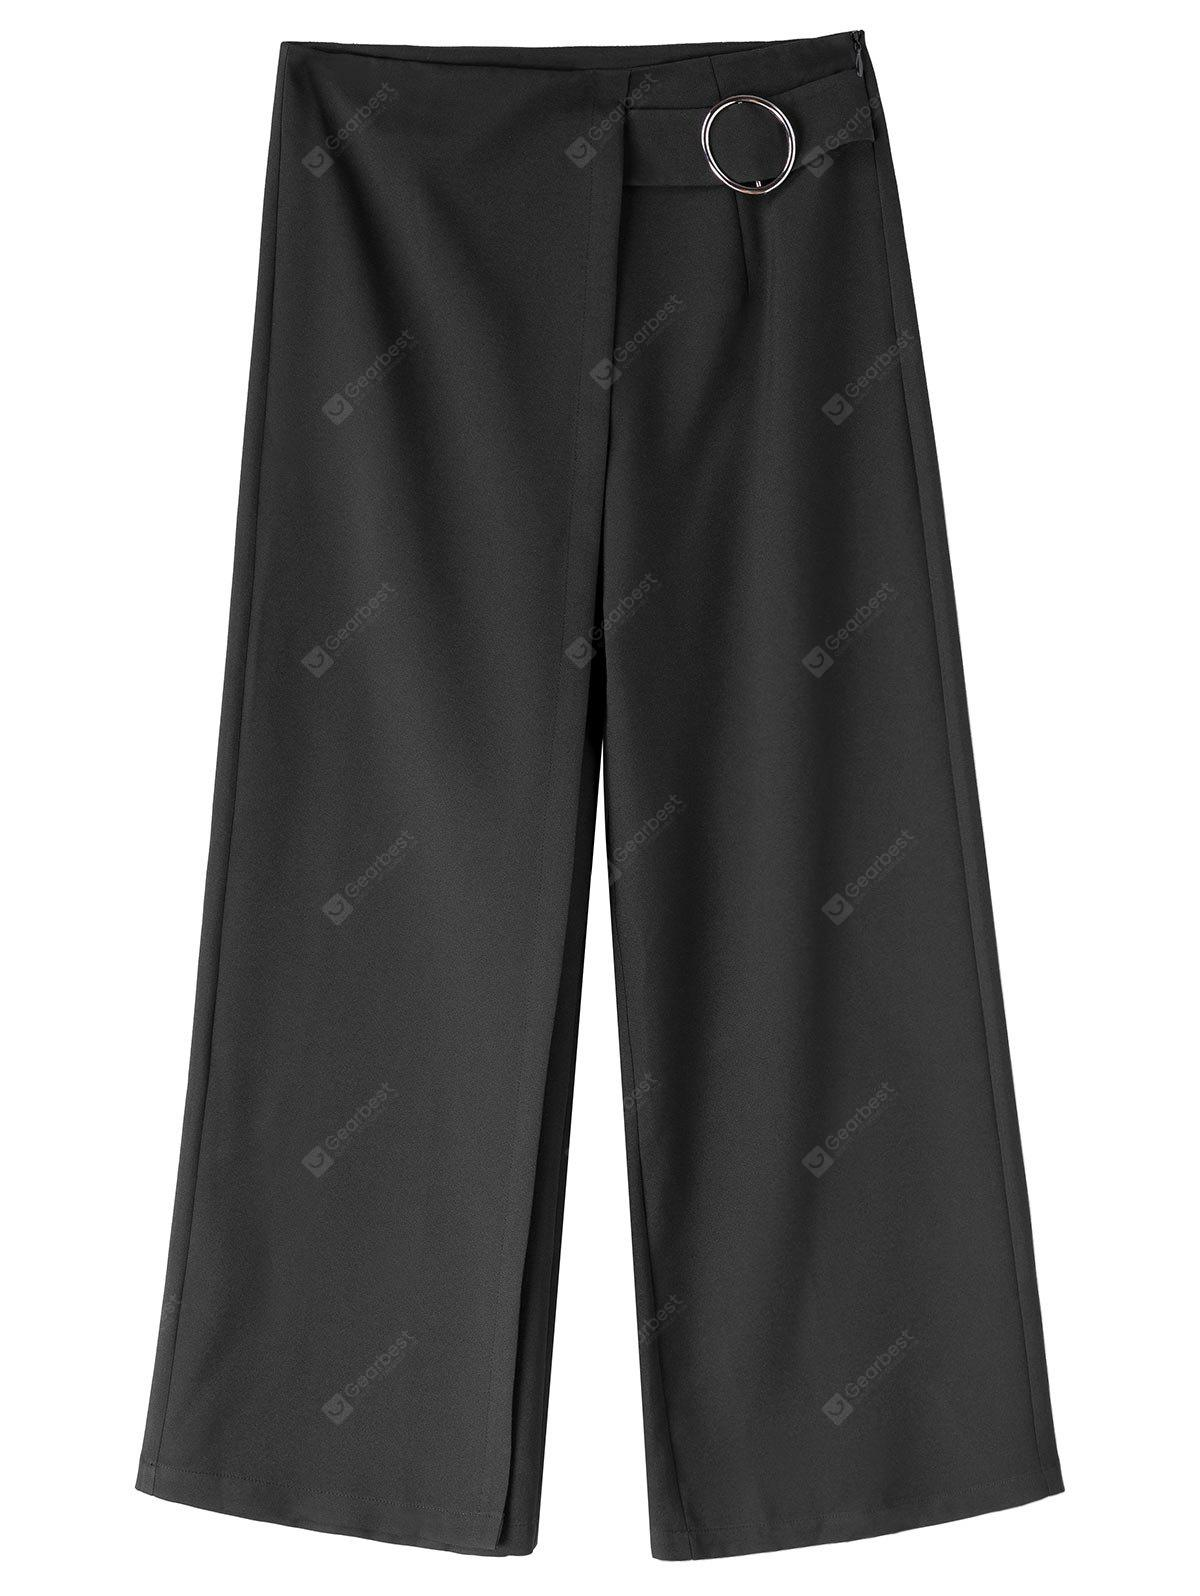 Wide Leg Plus Size Capri Gaucho Pants